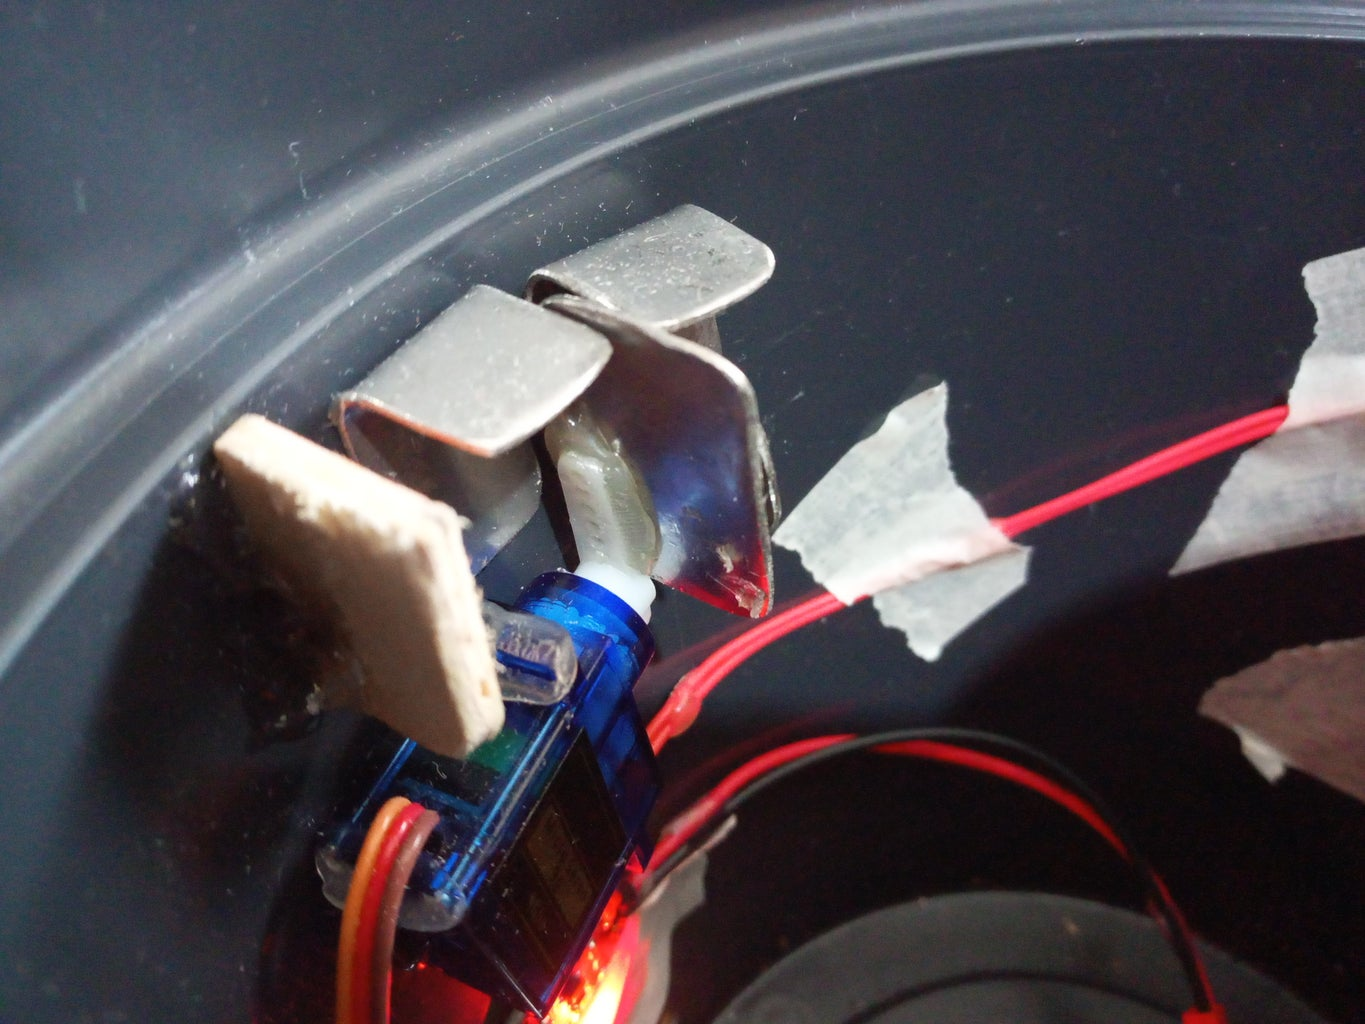 Secret Electronic Lock Without Visible Interface